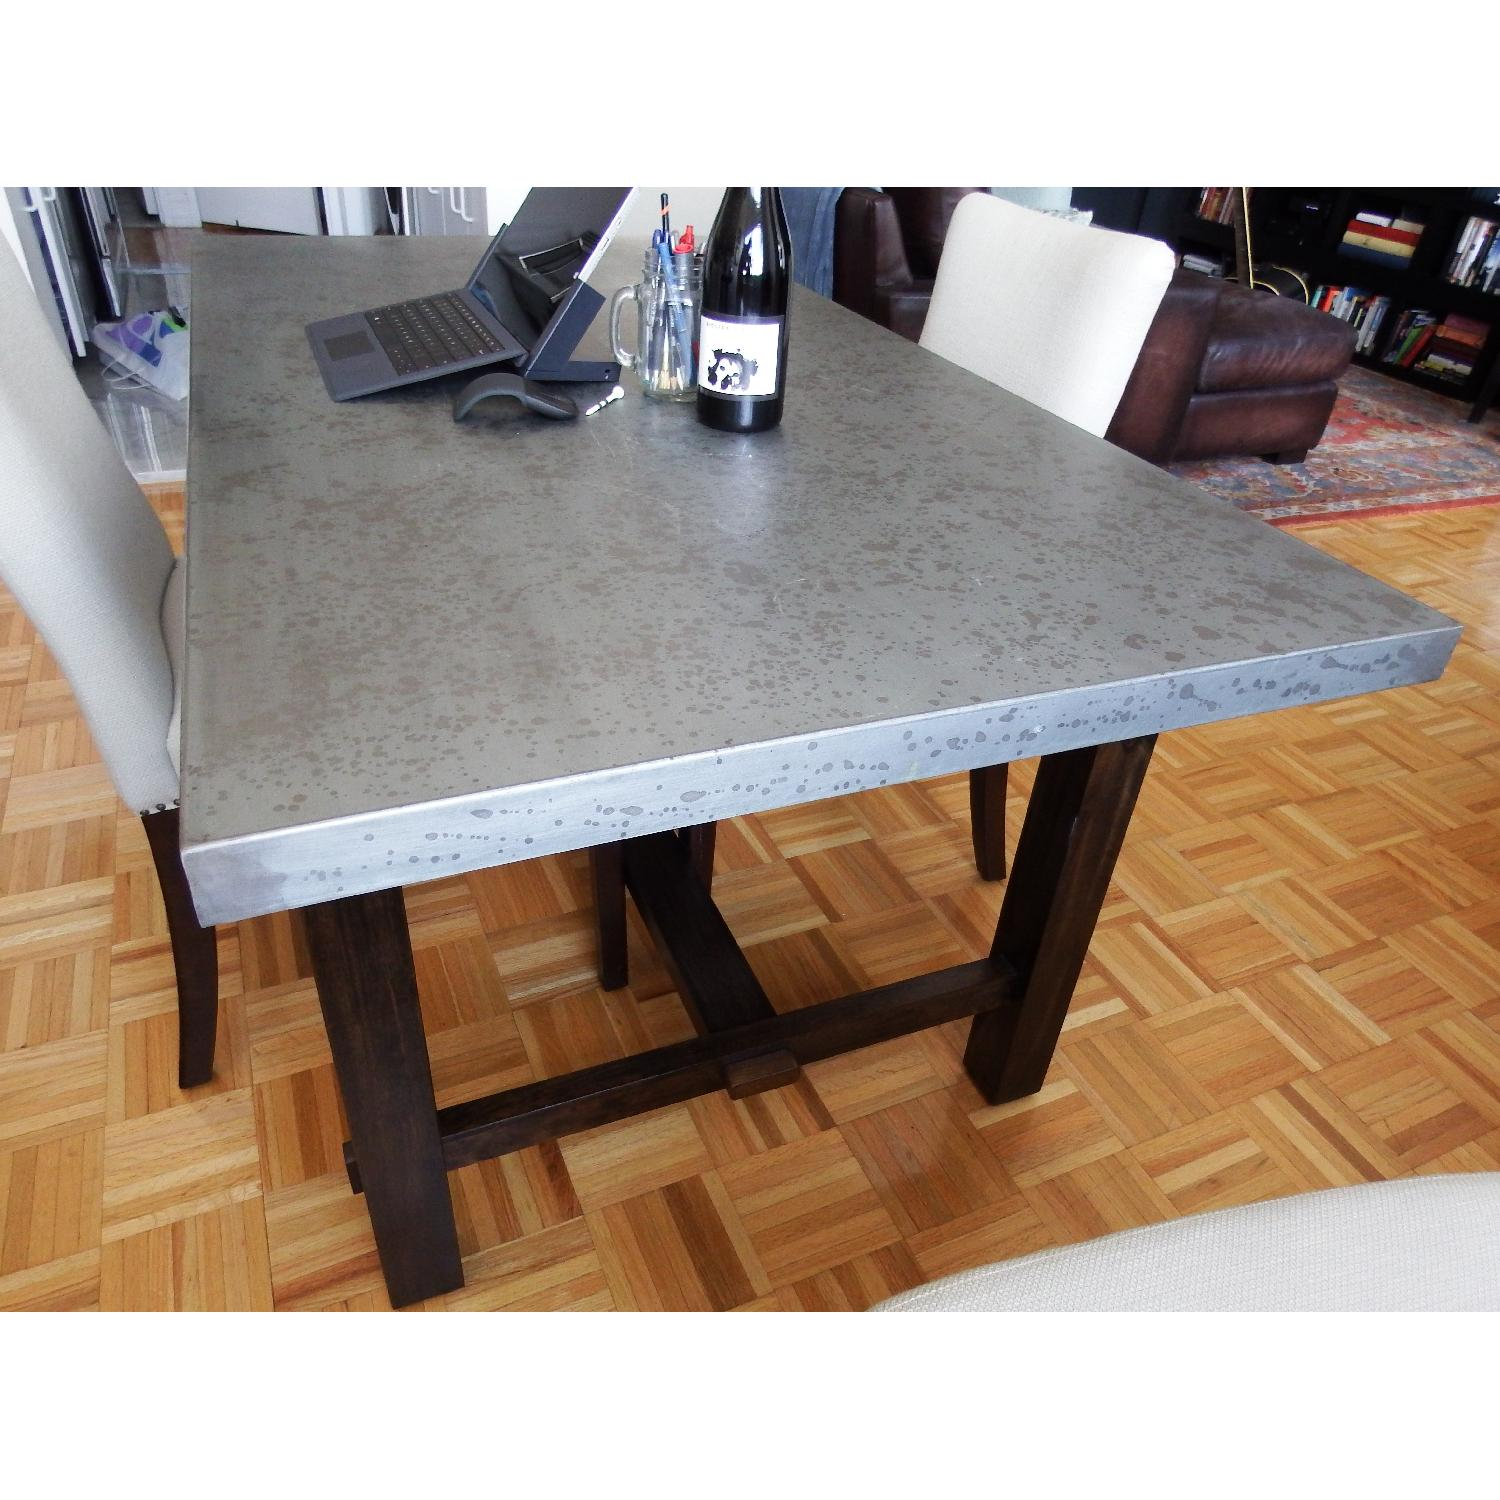 Zinc Top Dining Table - image-5